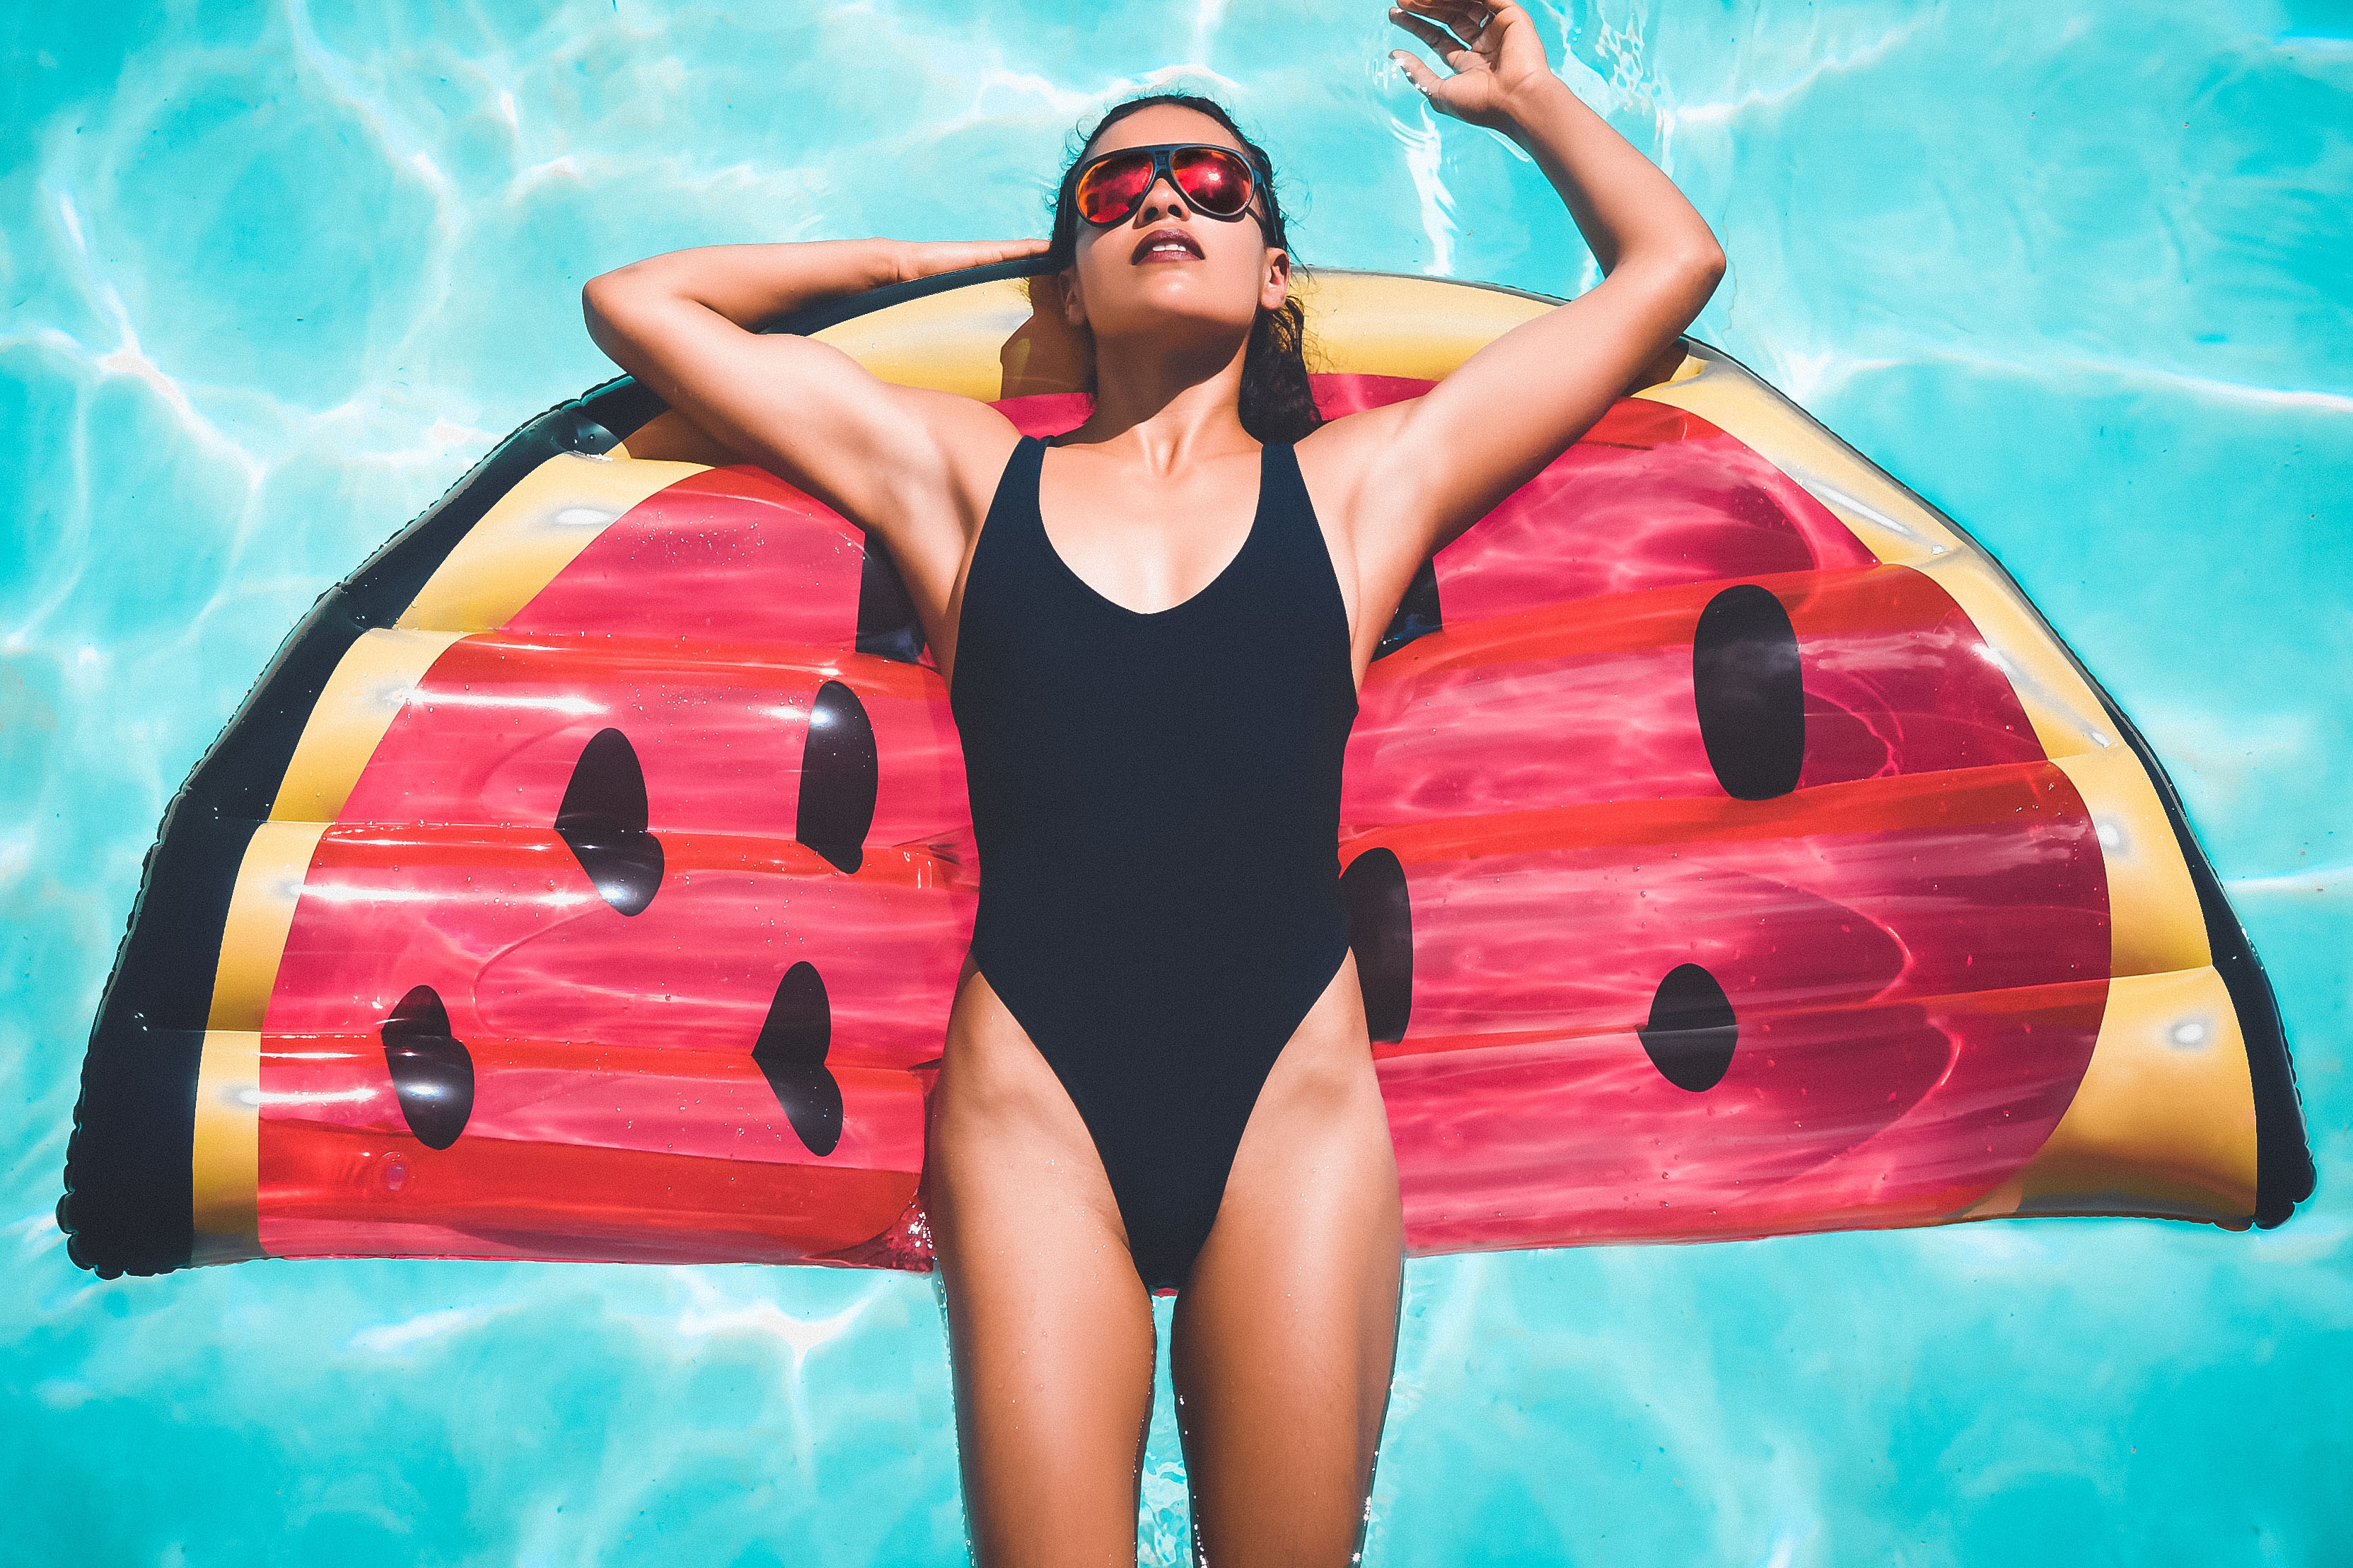 f1e7c5a83c3a1 The Flattering One-Piece Swimsuit on Sale Reviewers Never Want to Take Off